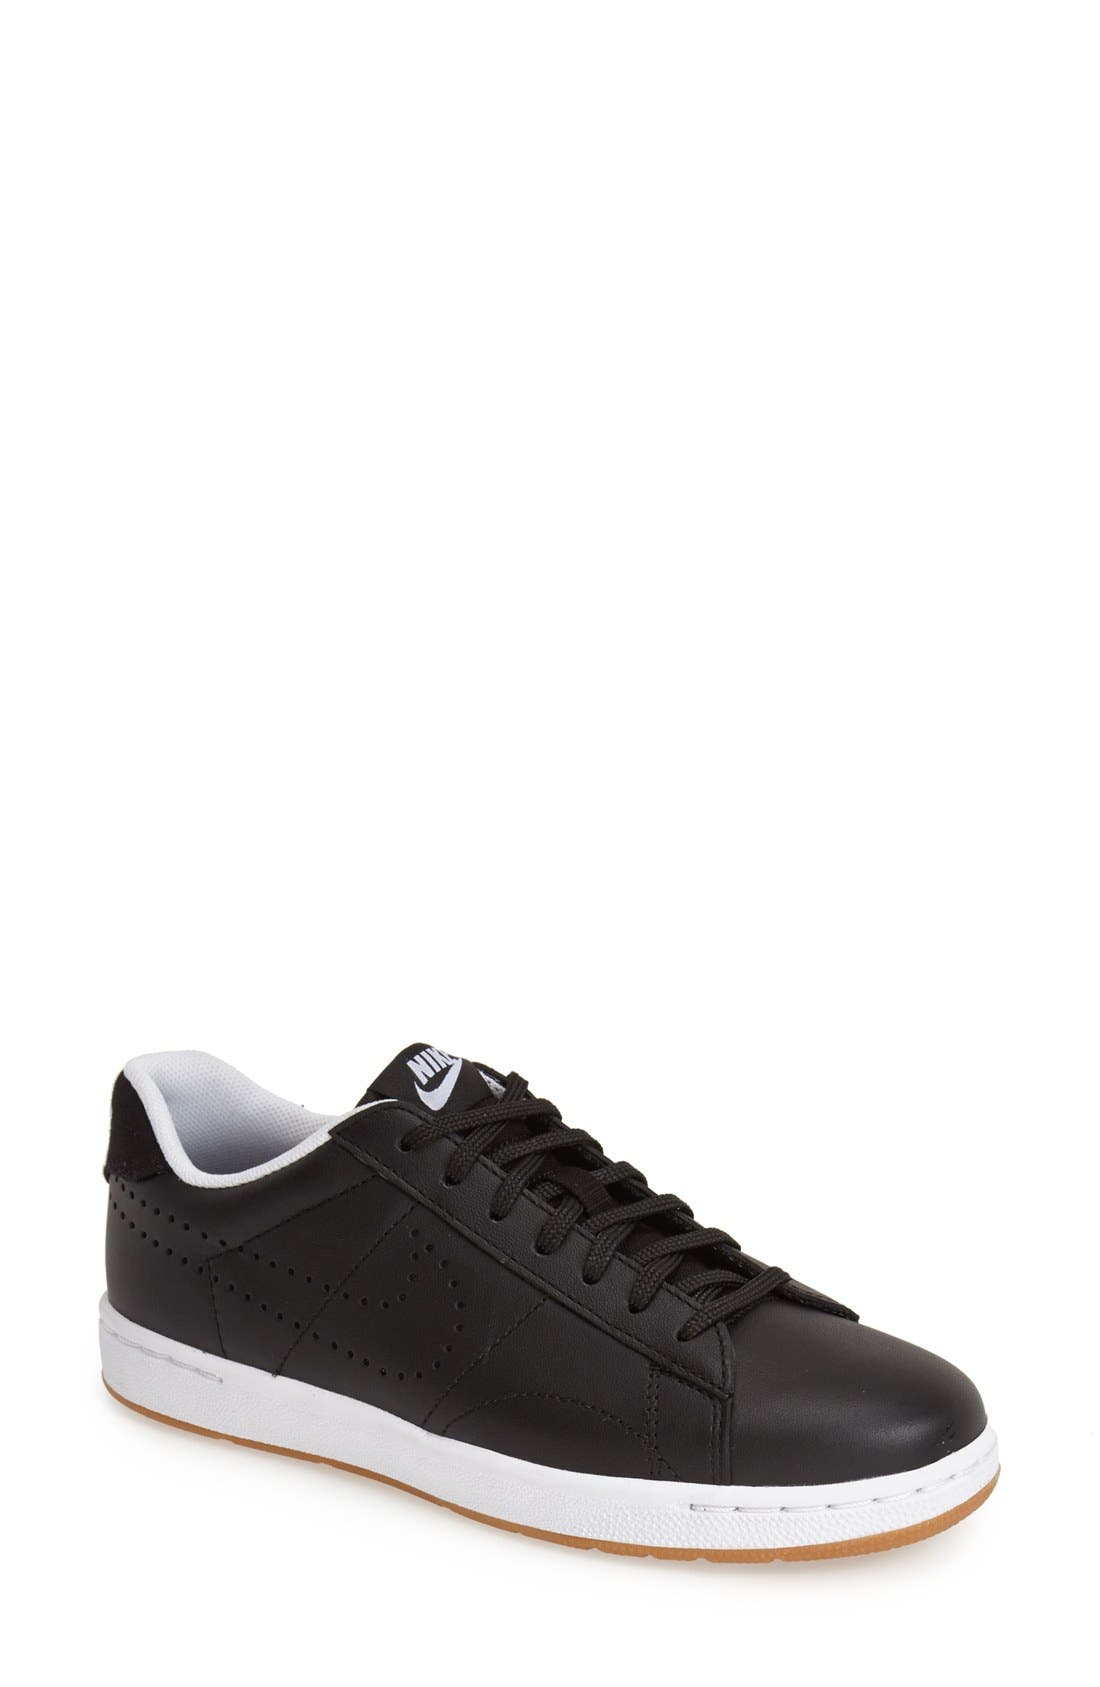 'Classic Ultra' Leather Sneaker,                             Main thumbnail 1, color,                             001